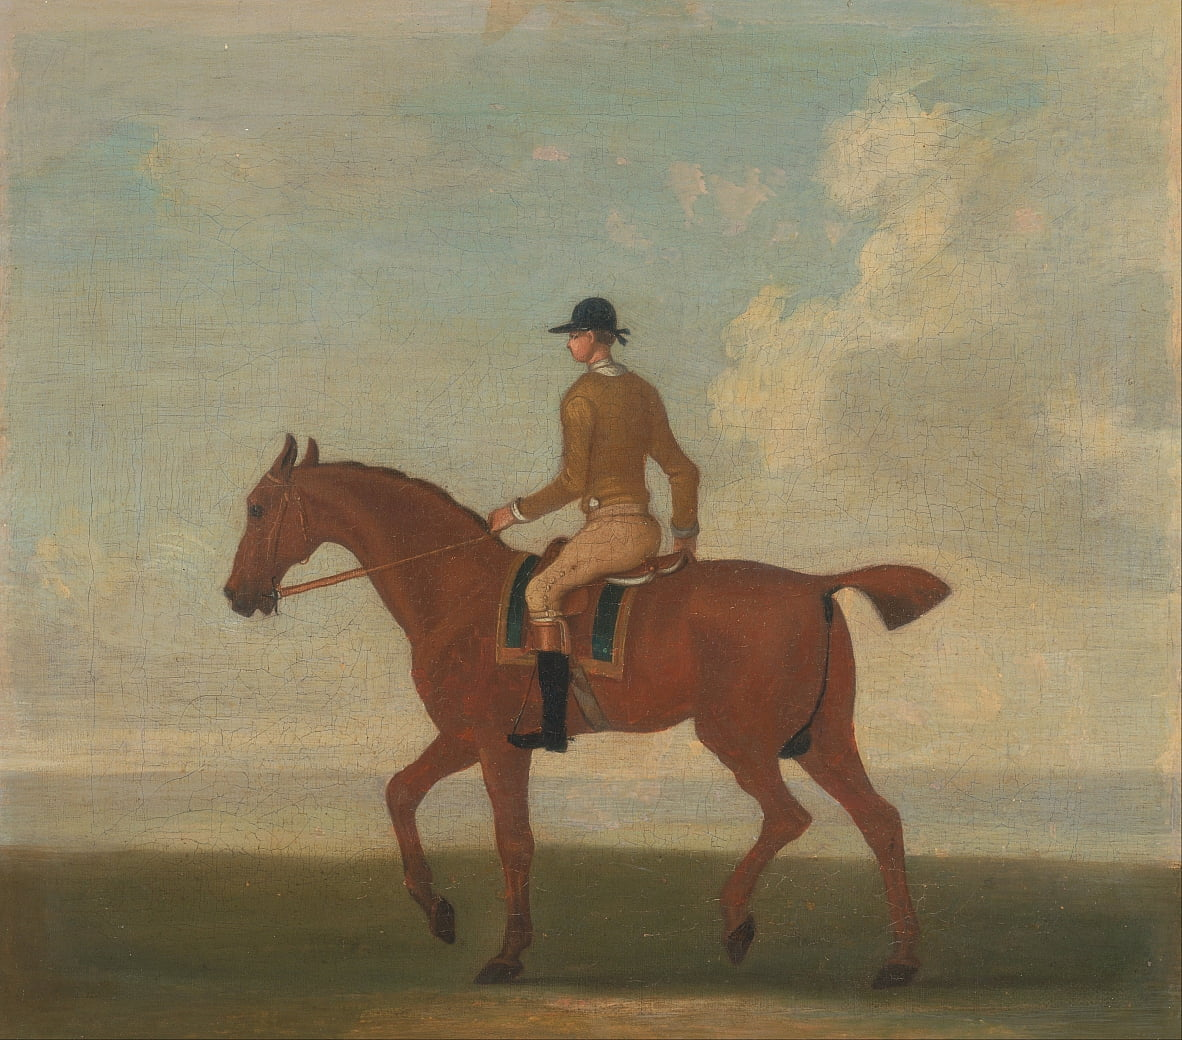 One of Four Portraits of Horses by James Seymour